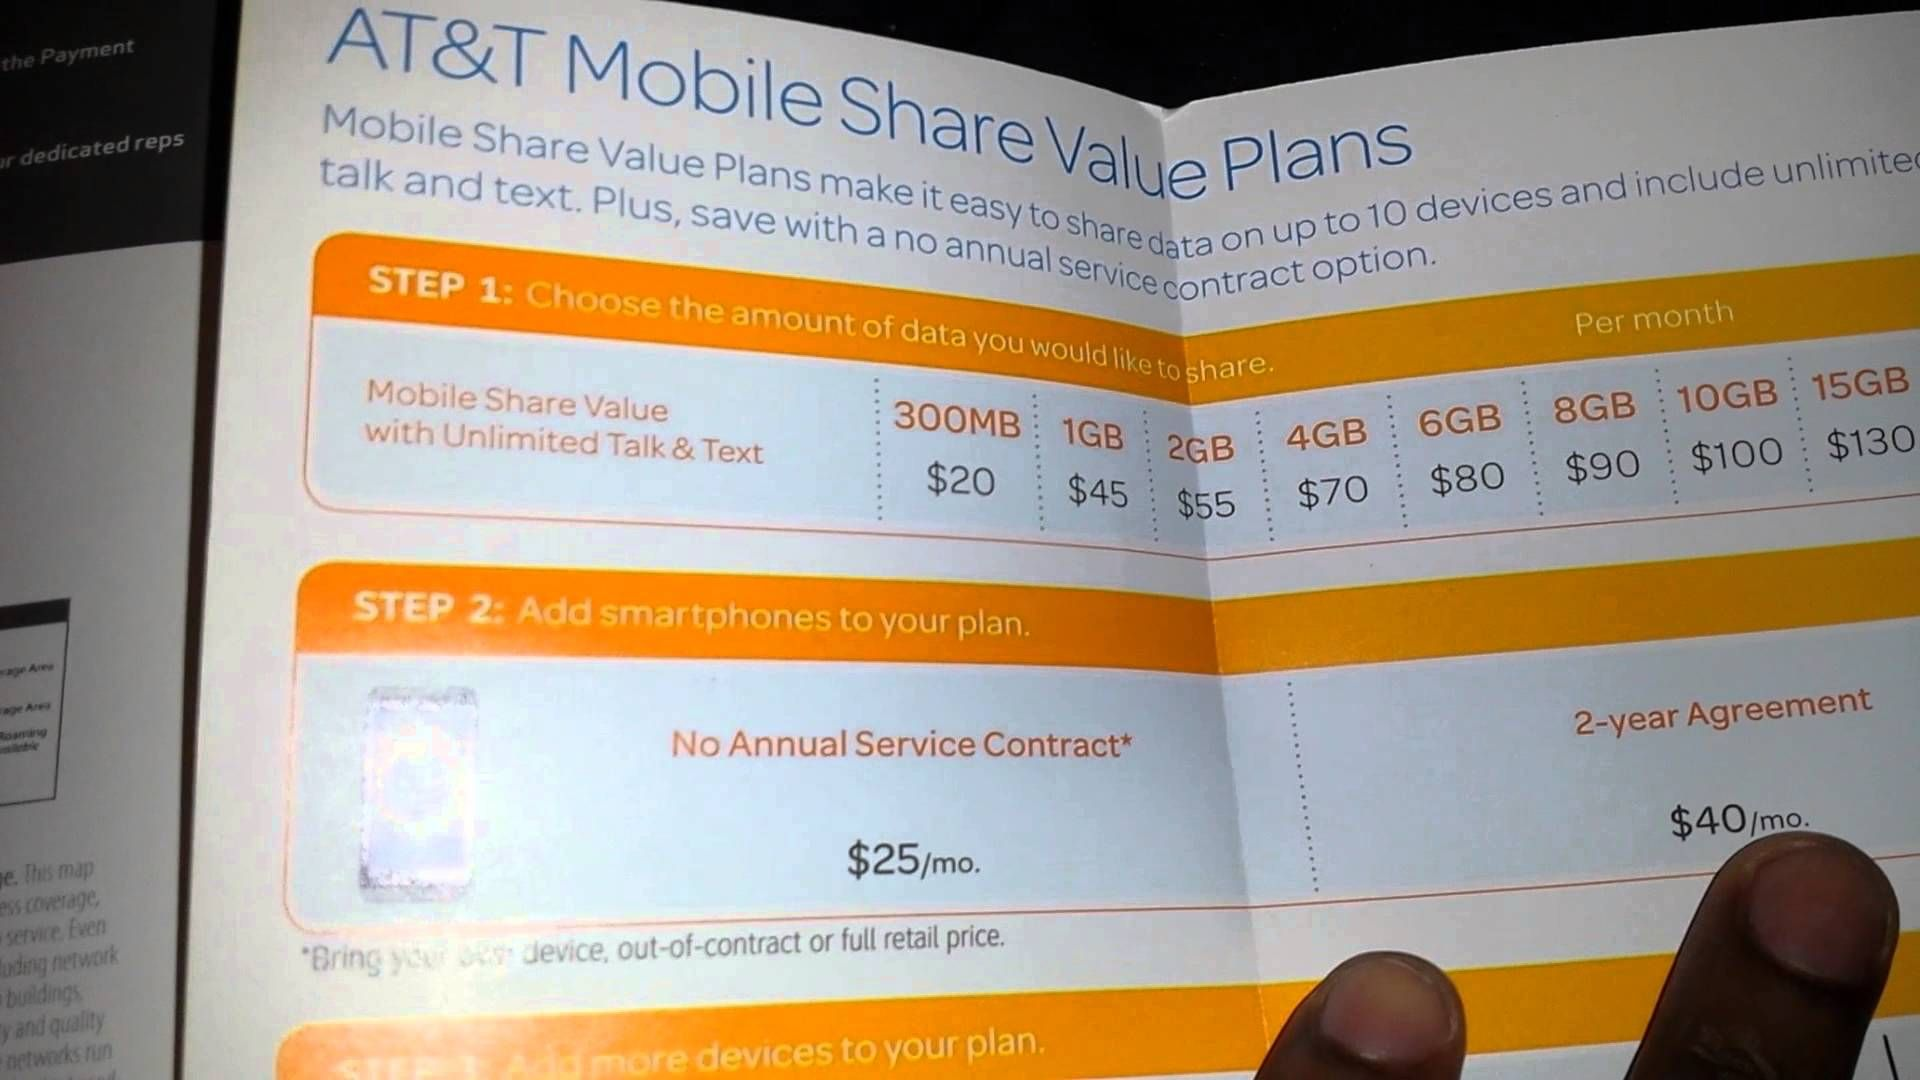 Coverage Battle (Verizon, AT&T, Sprint, Boost Mobile, Virgin Mobile)